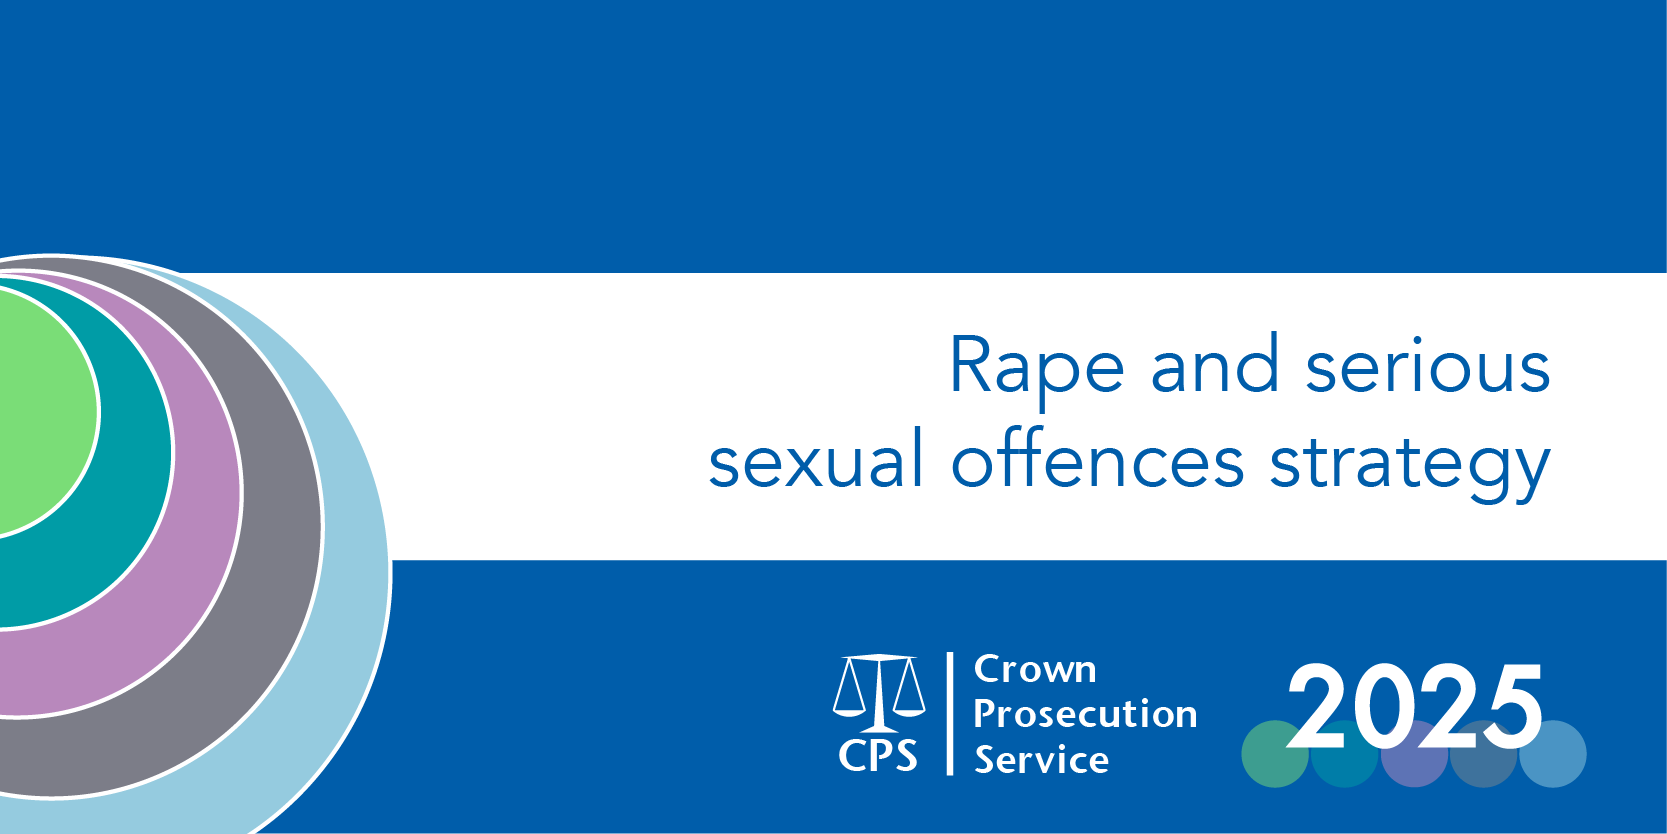 Rape and Serious Sexual Offences strategy image